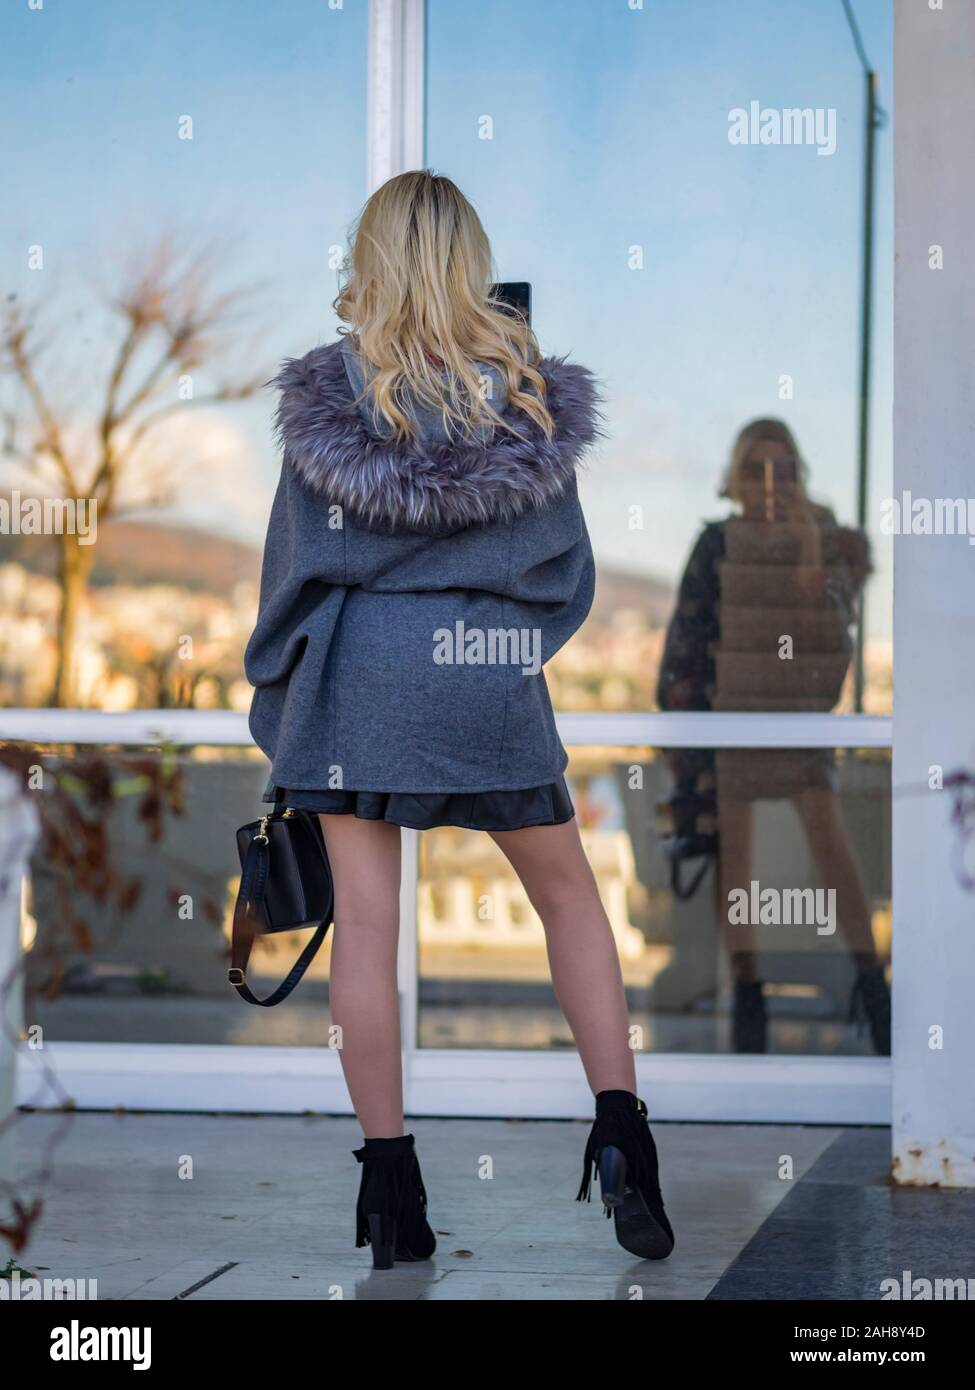 Fanciful blonde young lady is taking selfie in window glass reflection view from rear back behind model released release MR Stock Photo